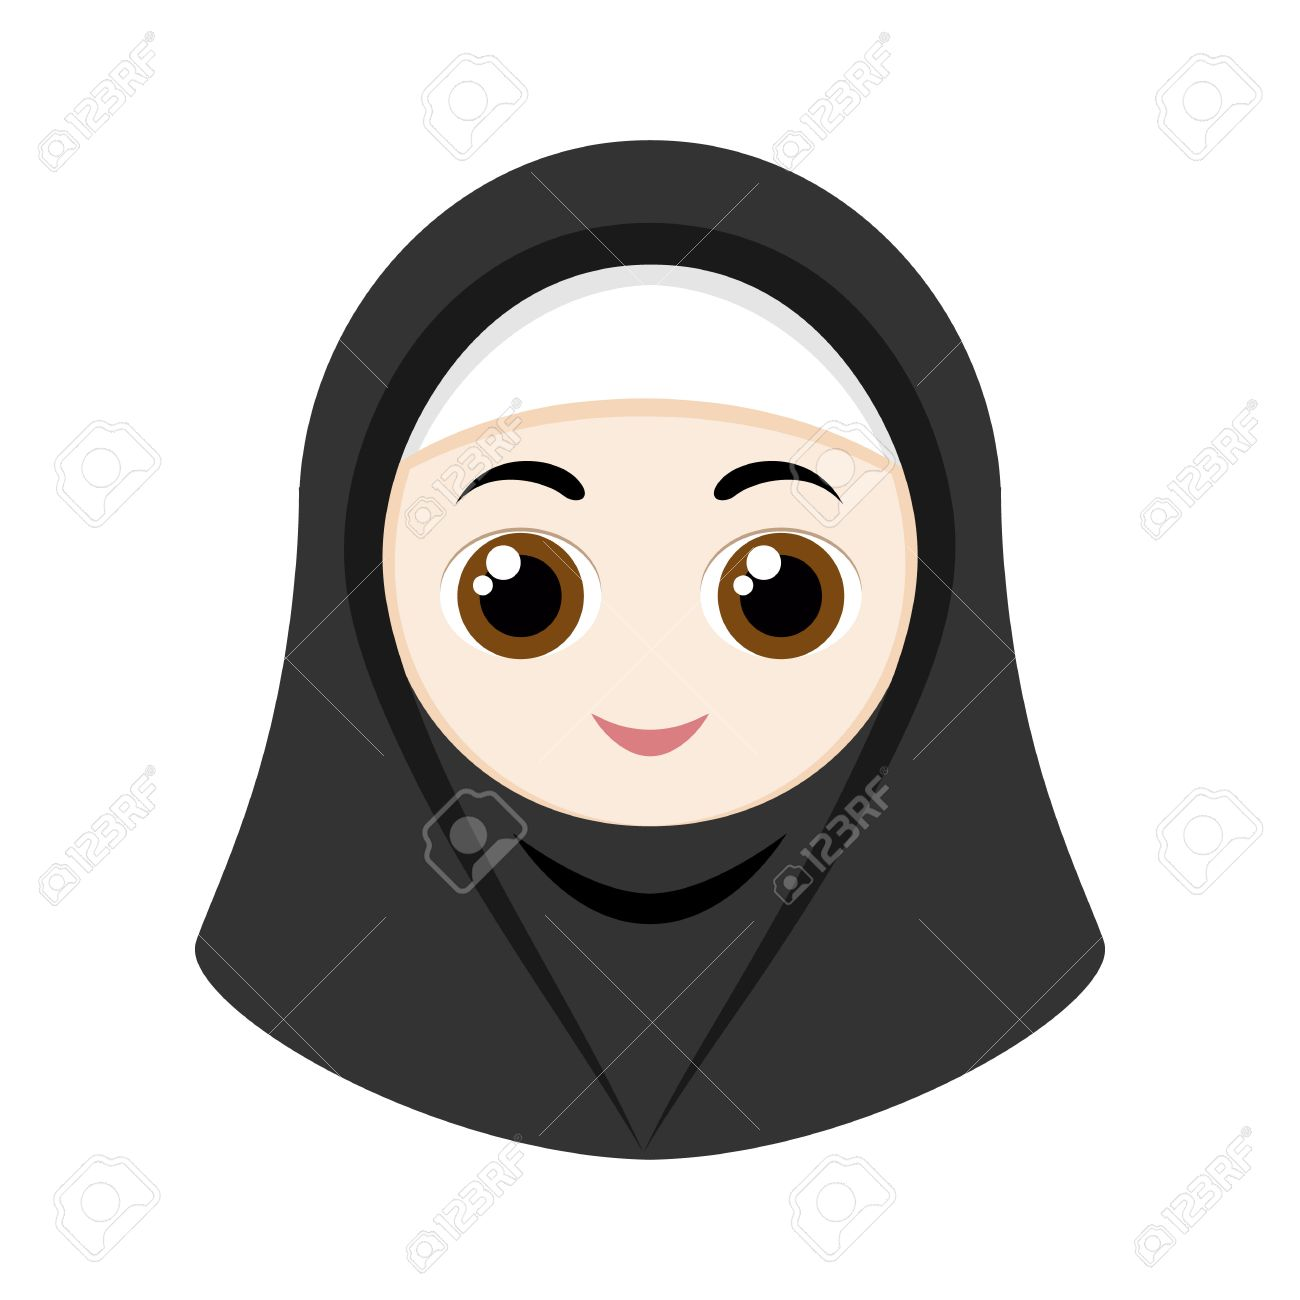 Muslim women wearing hijab cartoon vector. Cartoon Girl With Black Hijab Isolated On White Background Royalty Free Cliparts Vectors And Stock Illustration Image 56428741